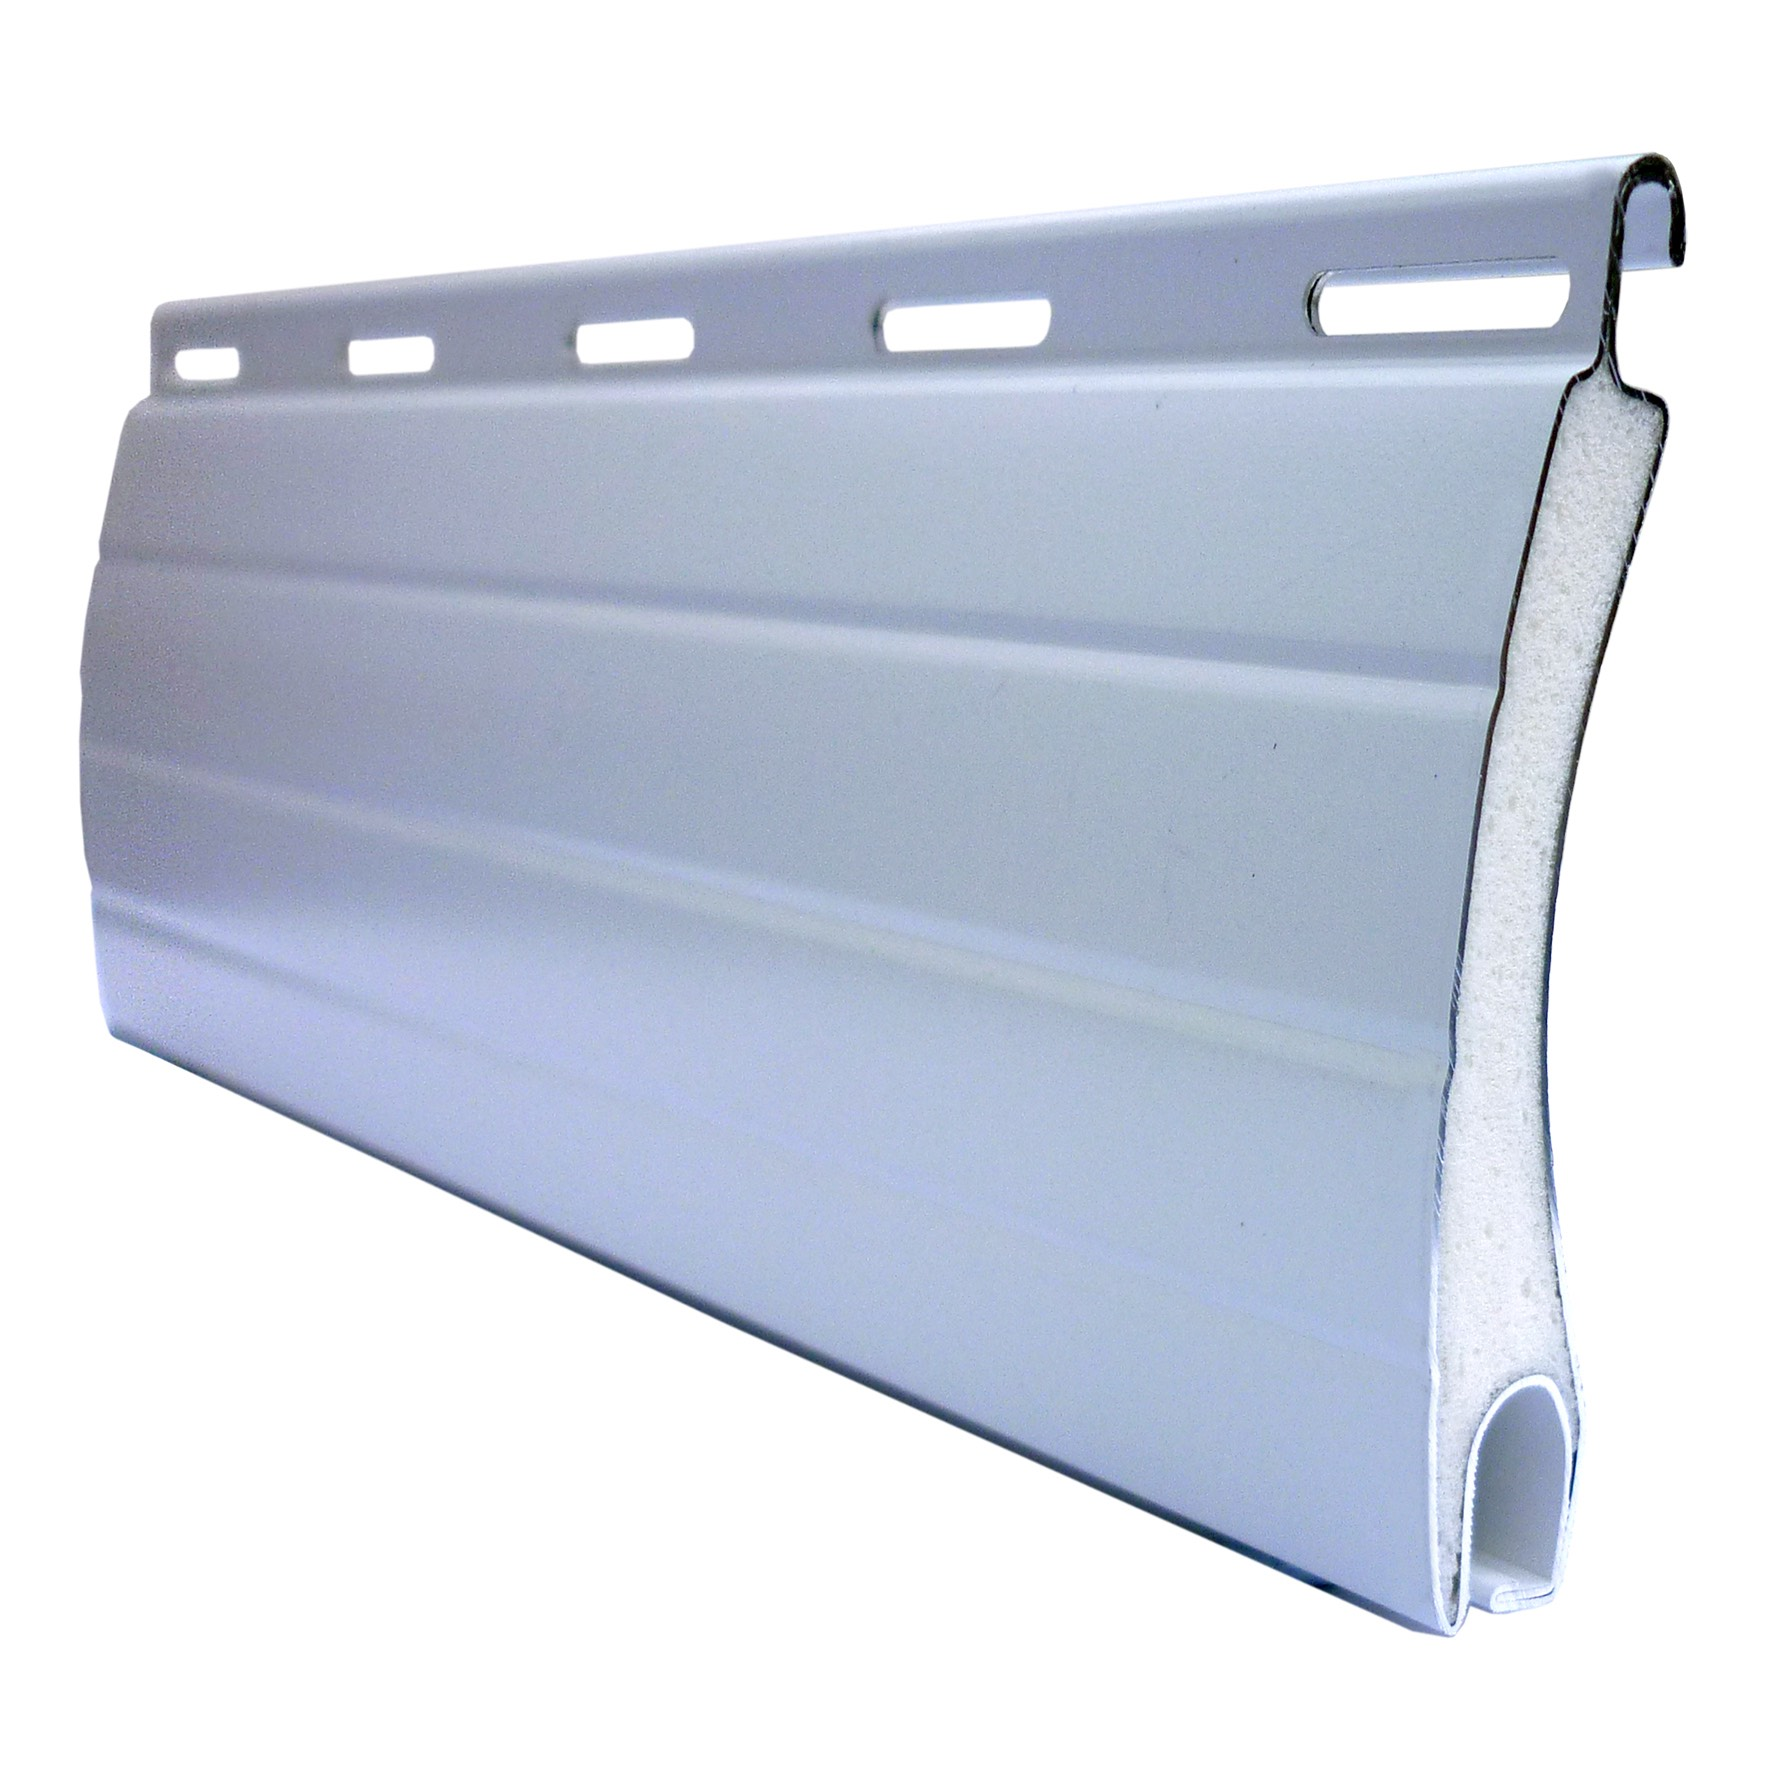 aluroll-m511-security-shutter-slat-profile